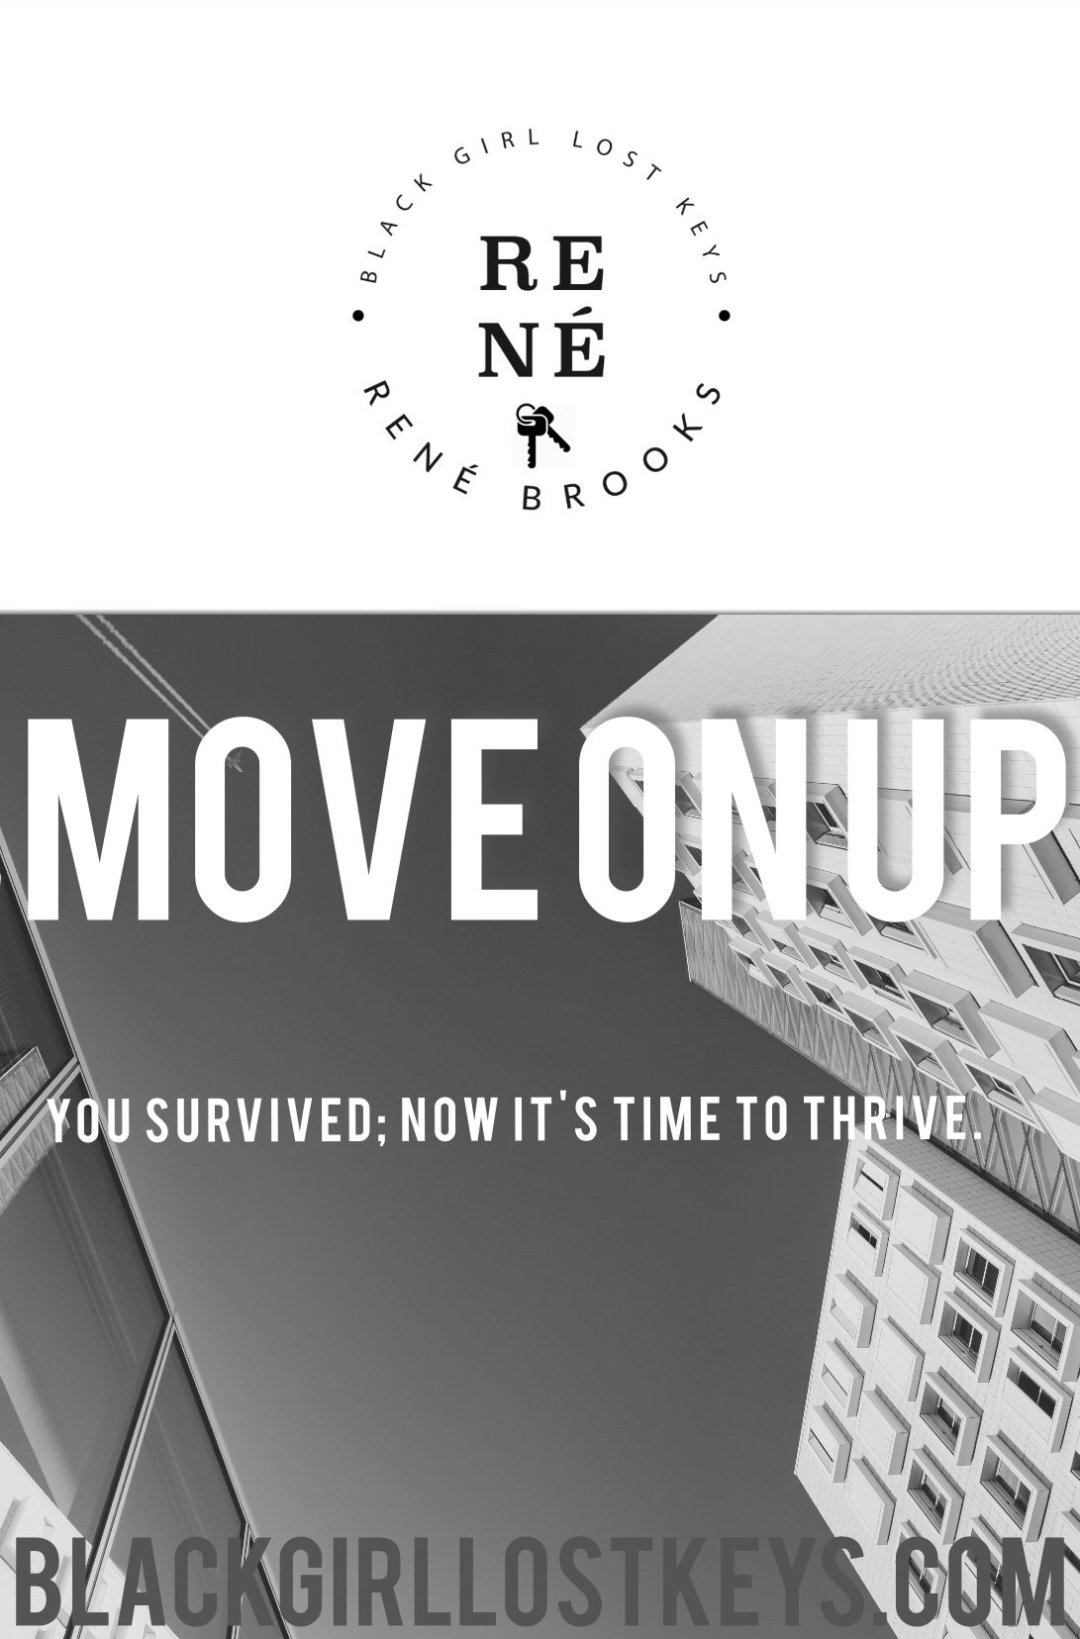 Move On Up: You Survive, Now Thrive! | Black Girl, Lost Keys